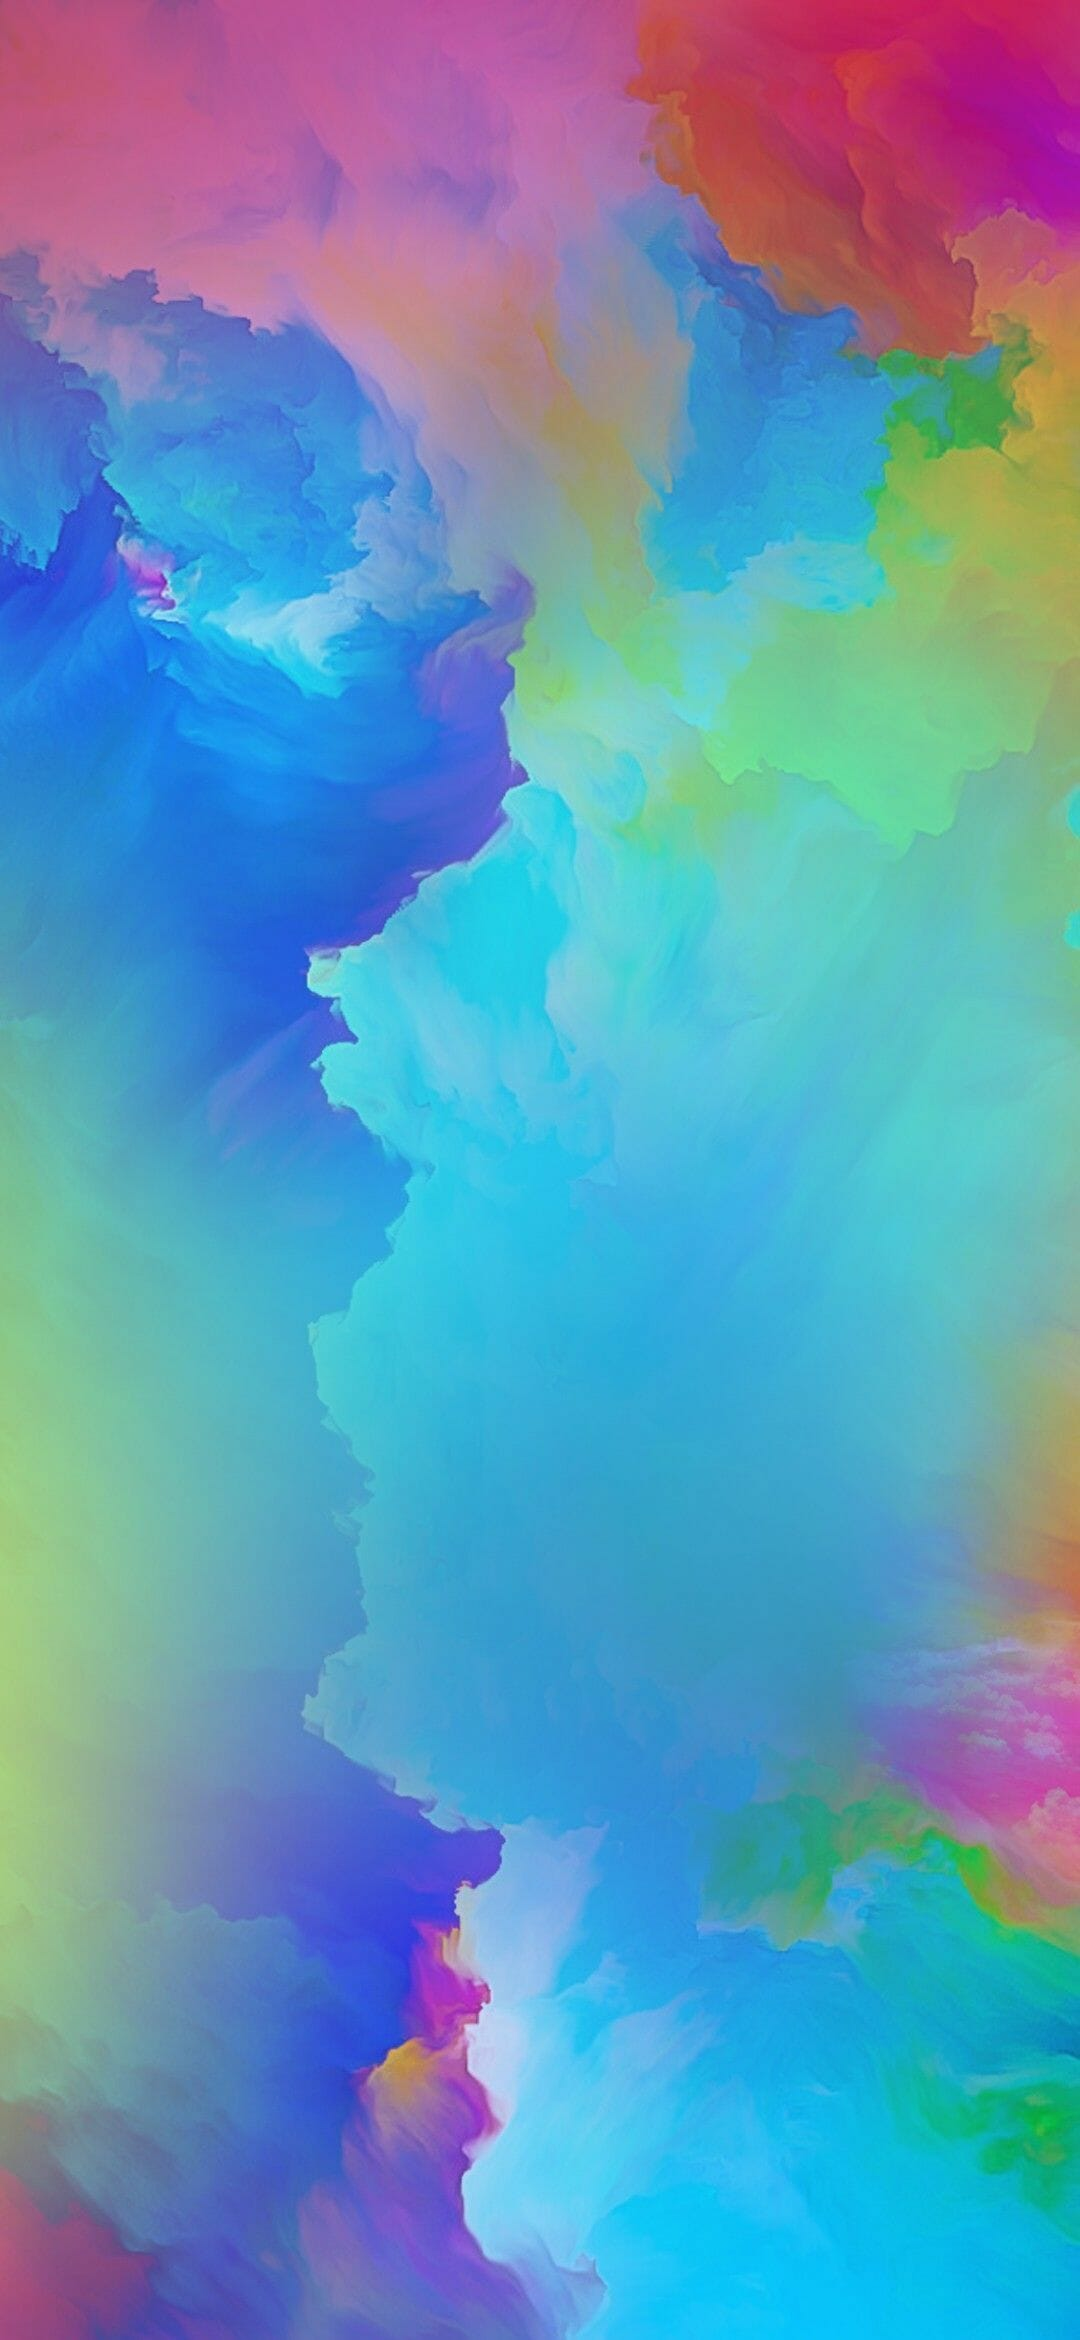 2860 Galaxy A30 Abstract Amoled Liquid Gradient In 2019 Android Iphone Hd Wallpaper Background Download Hd Wallpapers Desktop Background Android Iphone 1080p 4k 1080x2340 2021